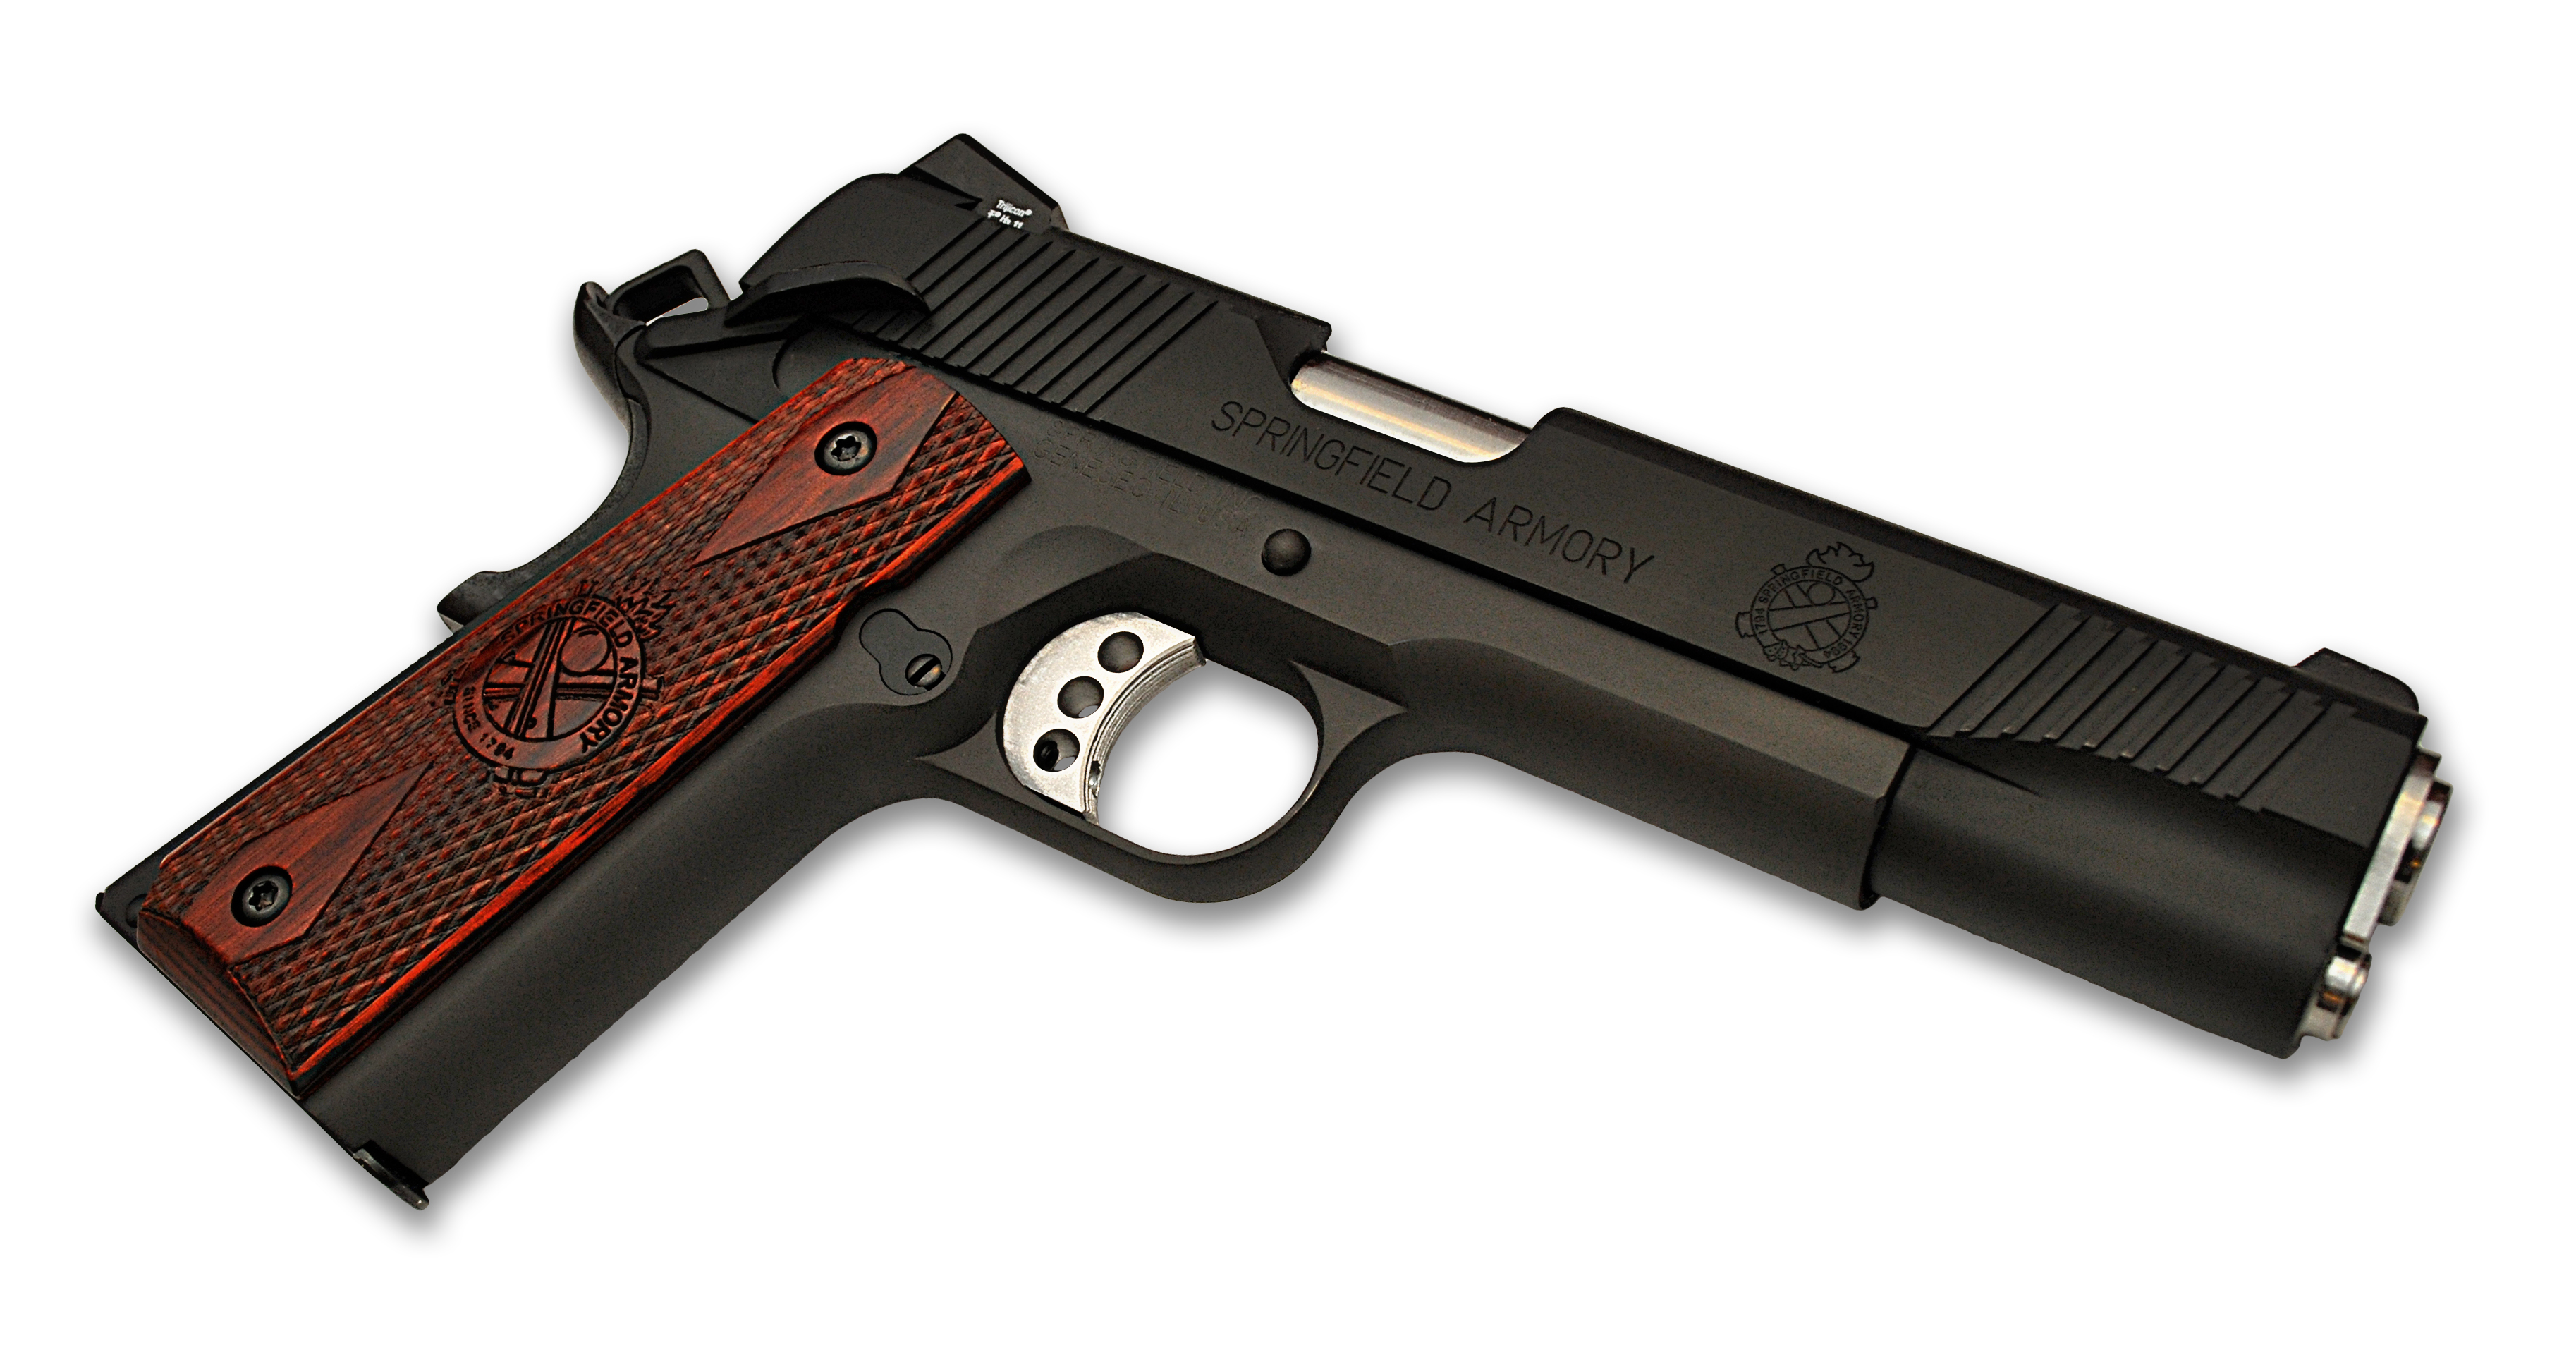 Weapons   Springfield Armory 1911 Pistol Wallpaper 3653x1914